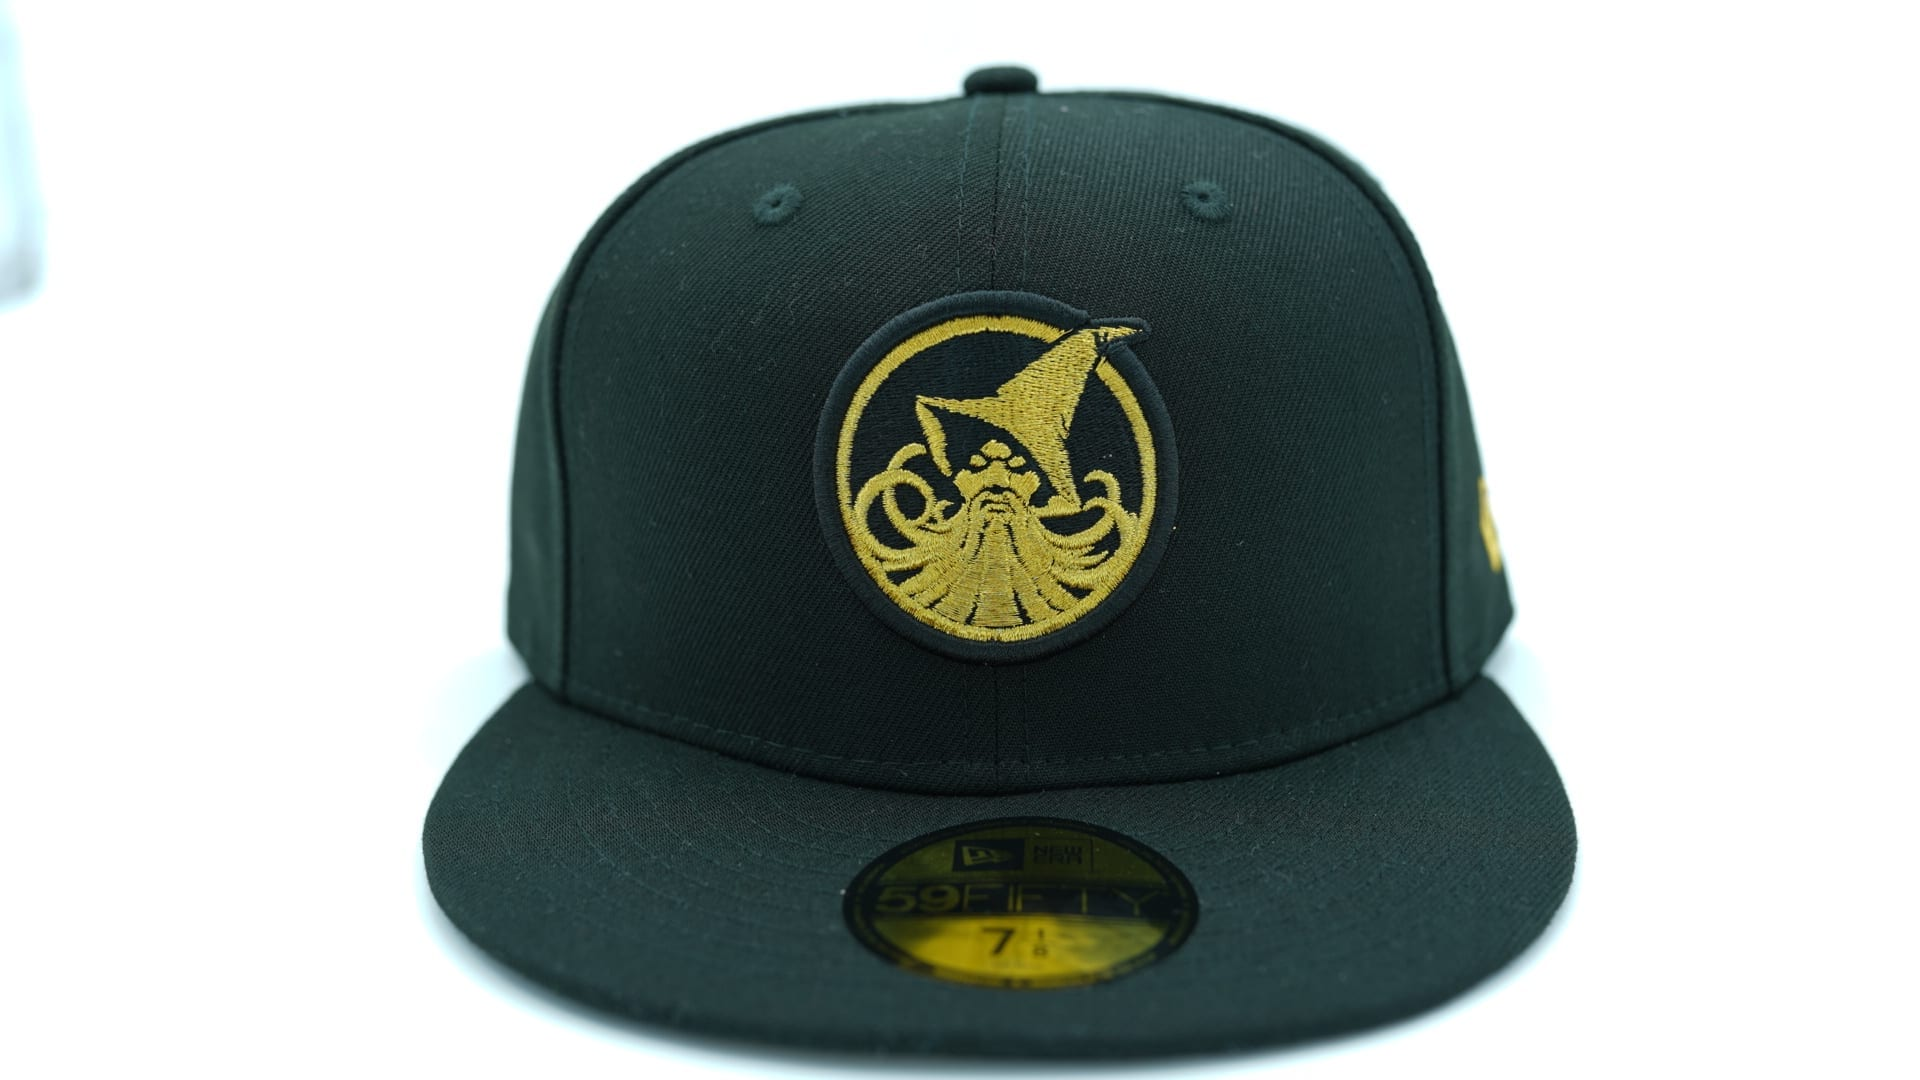 fe12383e2d9 ... closeout new era x nflatlanta falcons over flock59fifty fitted baseball  cap strictly fitteds b0401 08757